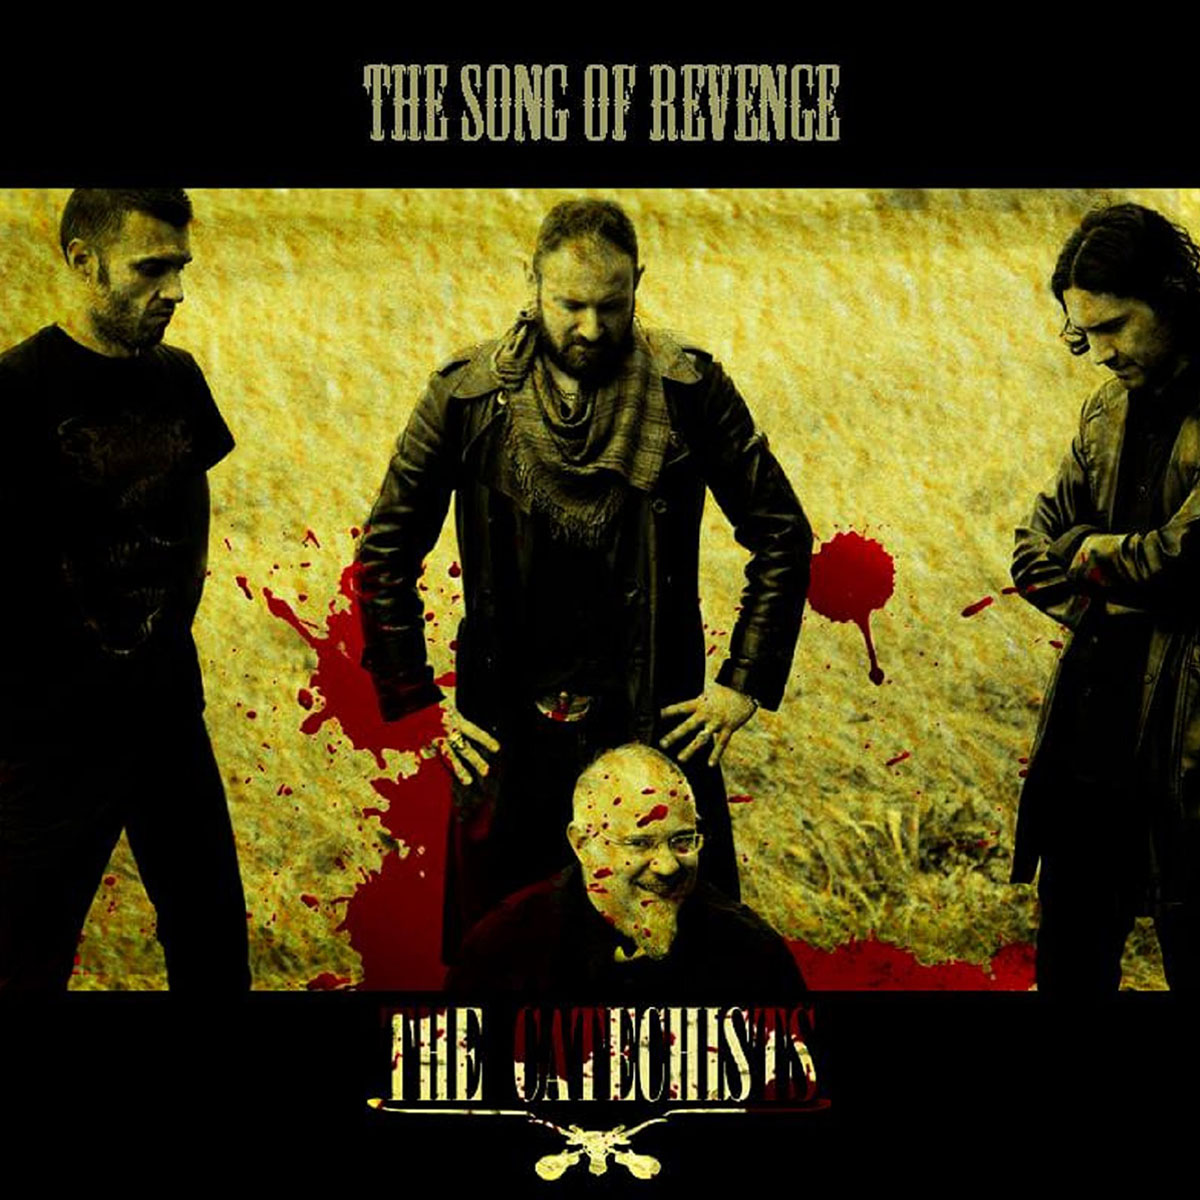 The Song of Revenge - The Catechists - Underground Noises Records